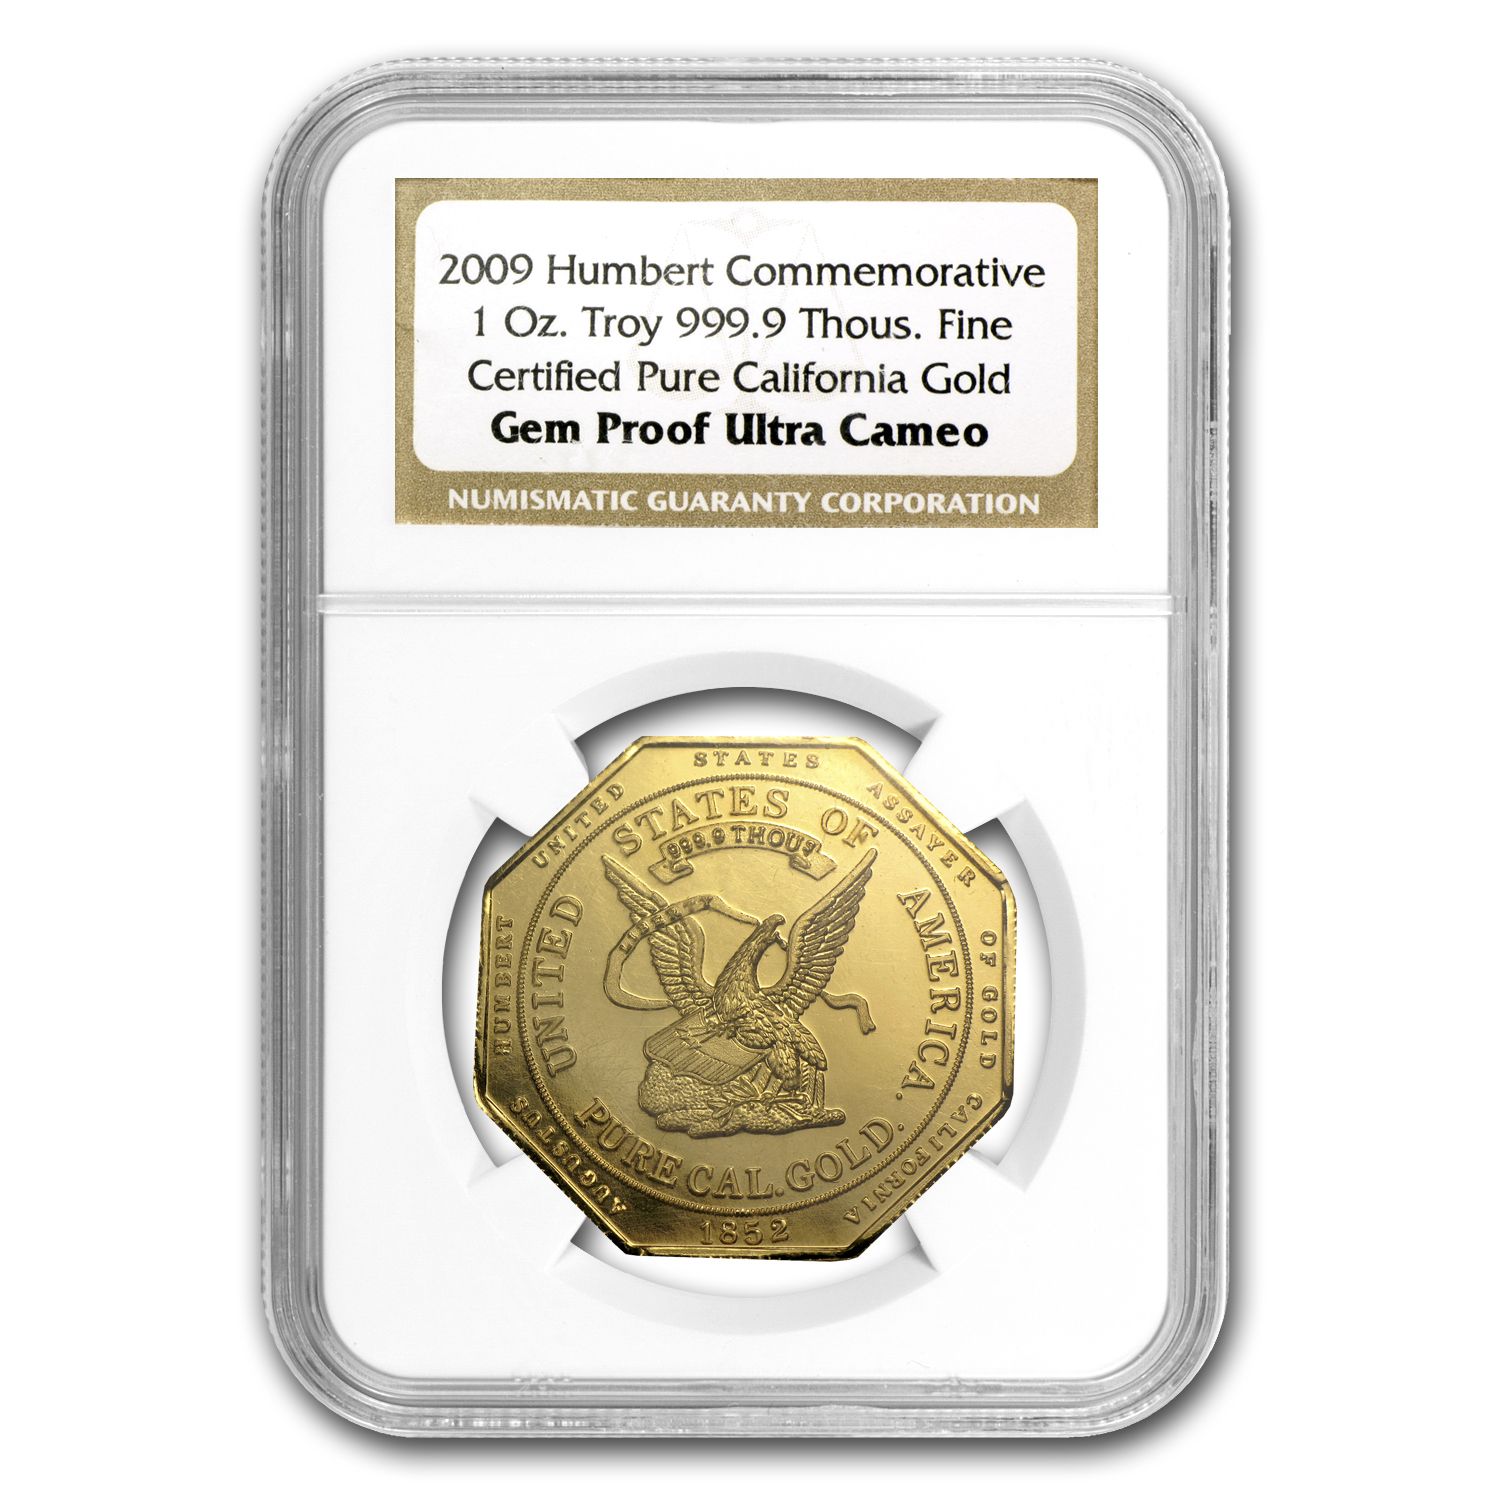 1 oz Gold Rounds - 2009 Humbert Commemorative Gold (Ultra Cameo)